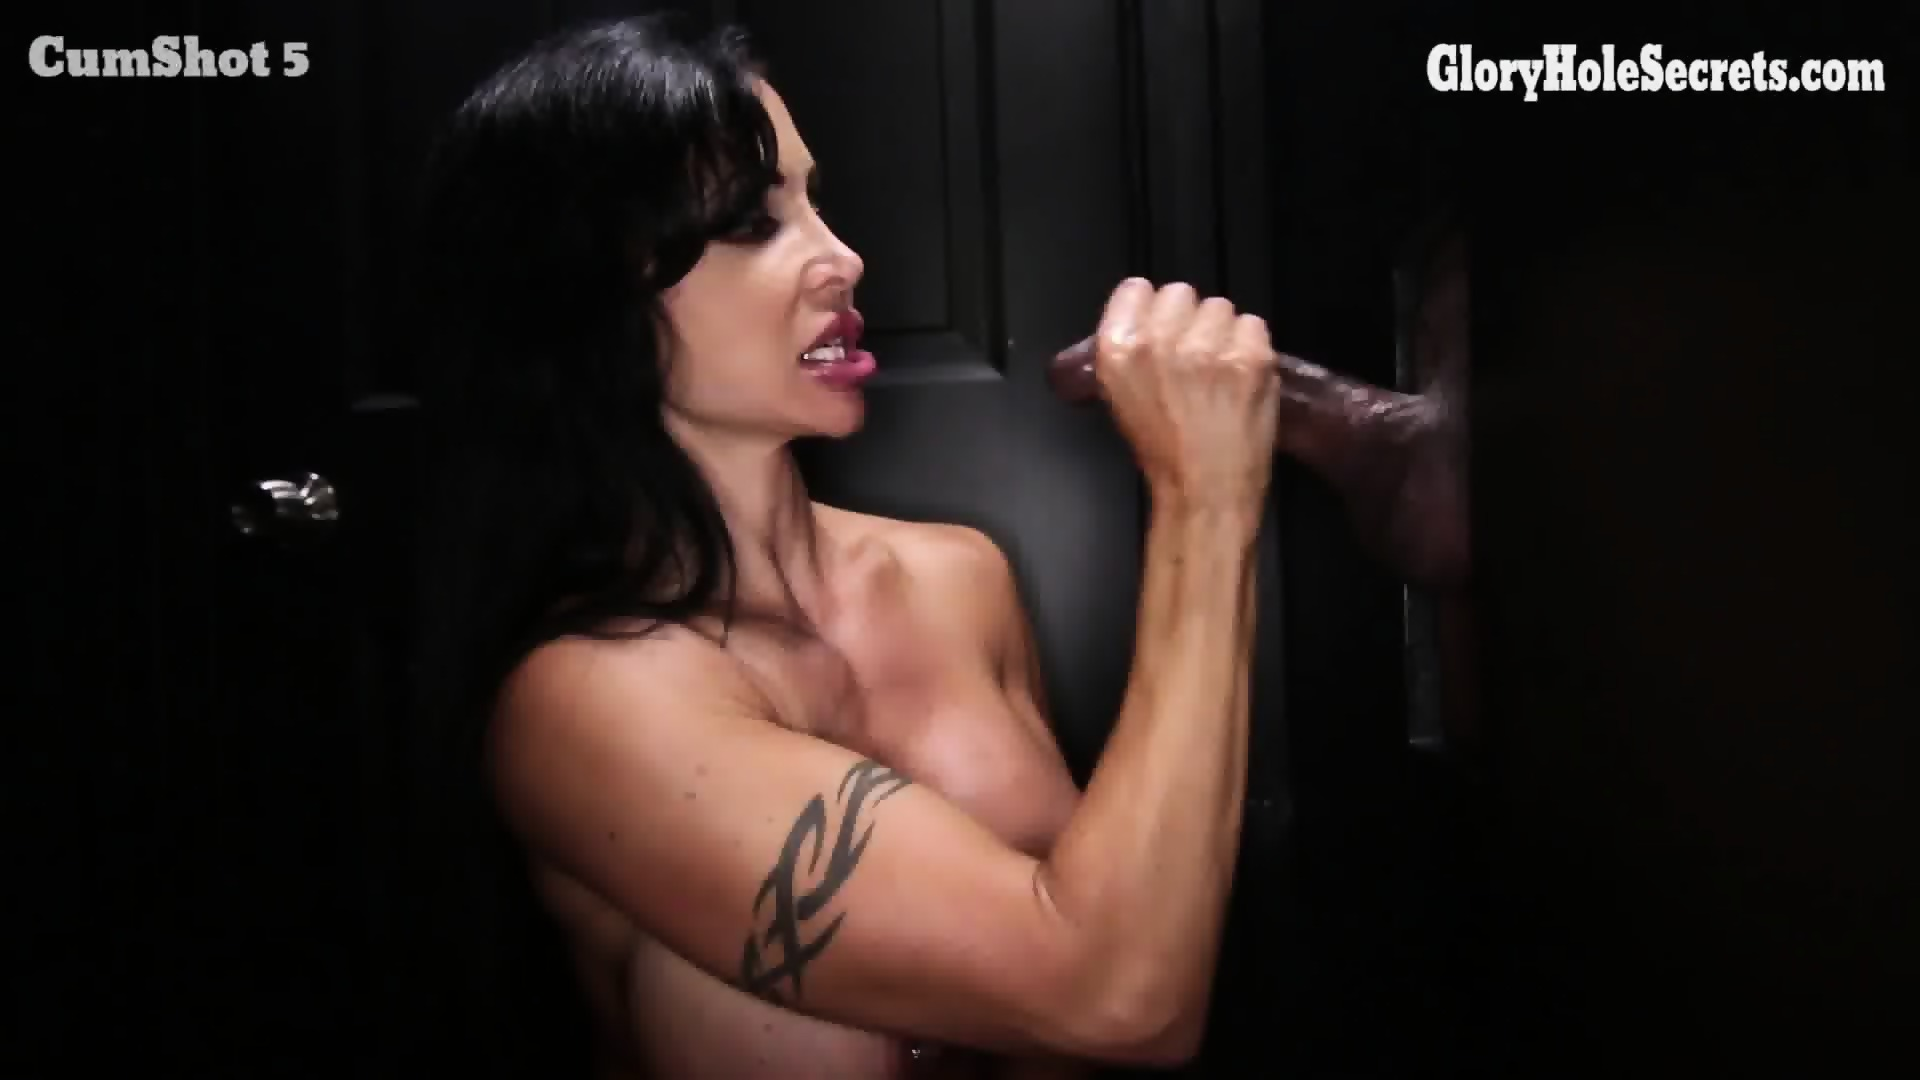 Women glory hole phoenix